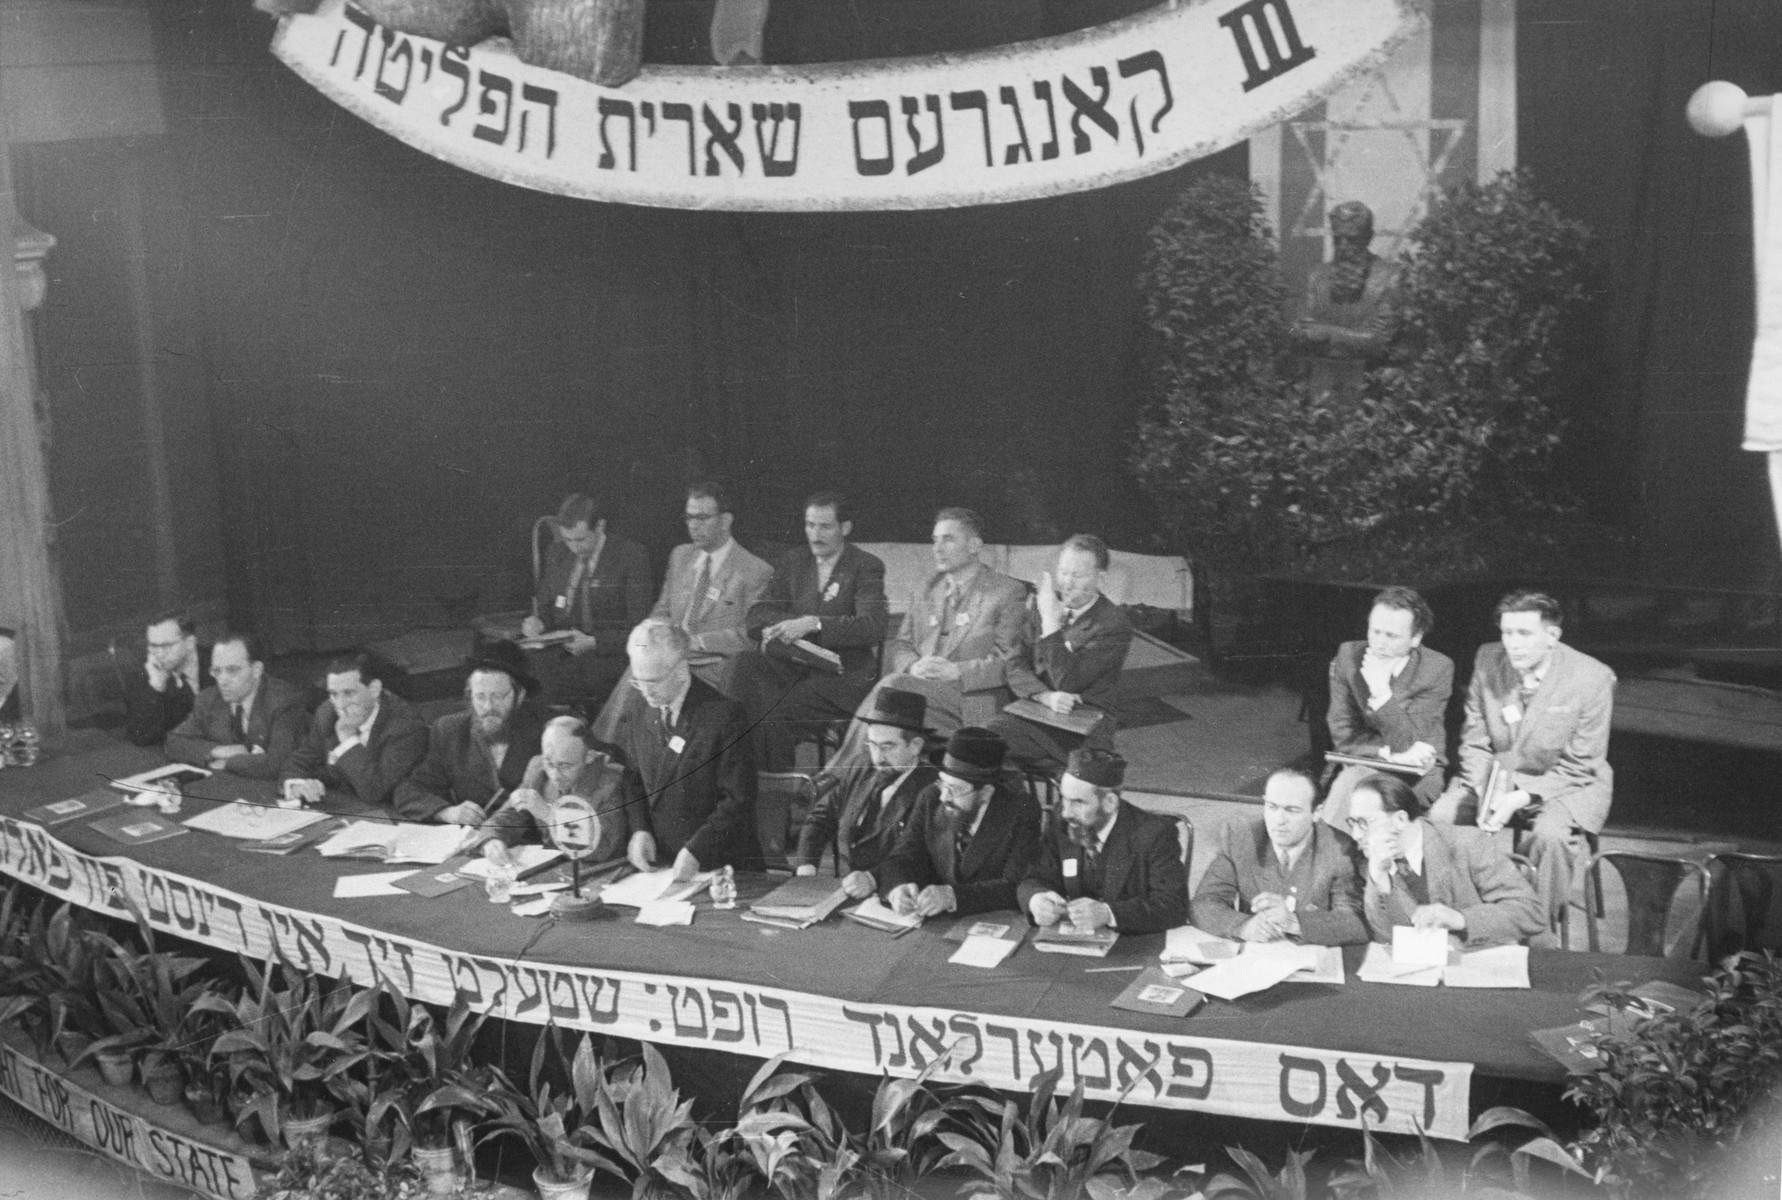 """View of the dais at the Third Congress of the Central Committee of the Liberated Jews in the U.S. Zone held in Bad Reichenhall.    The Yiddish banner on the podium reads, """"The Fatherland calls; offer your service to the people."""""""